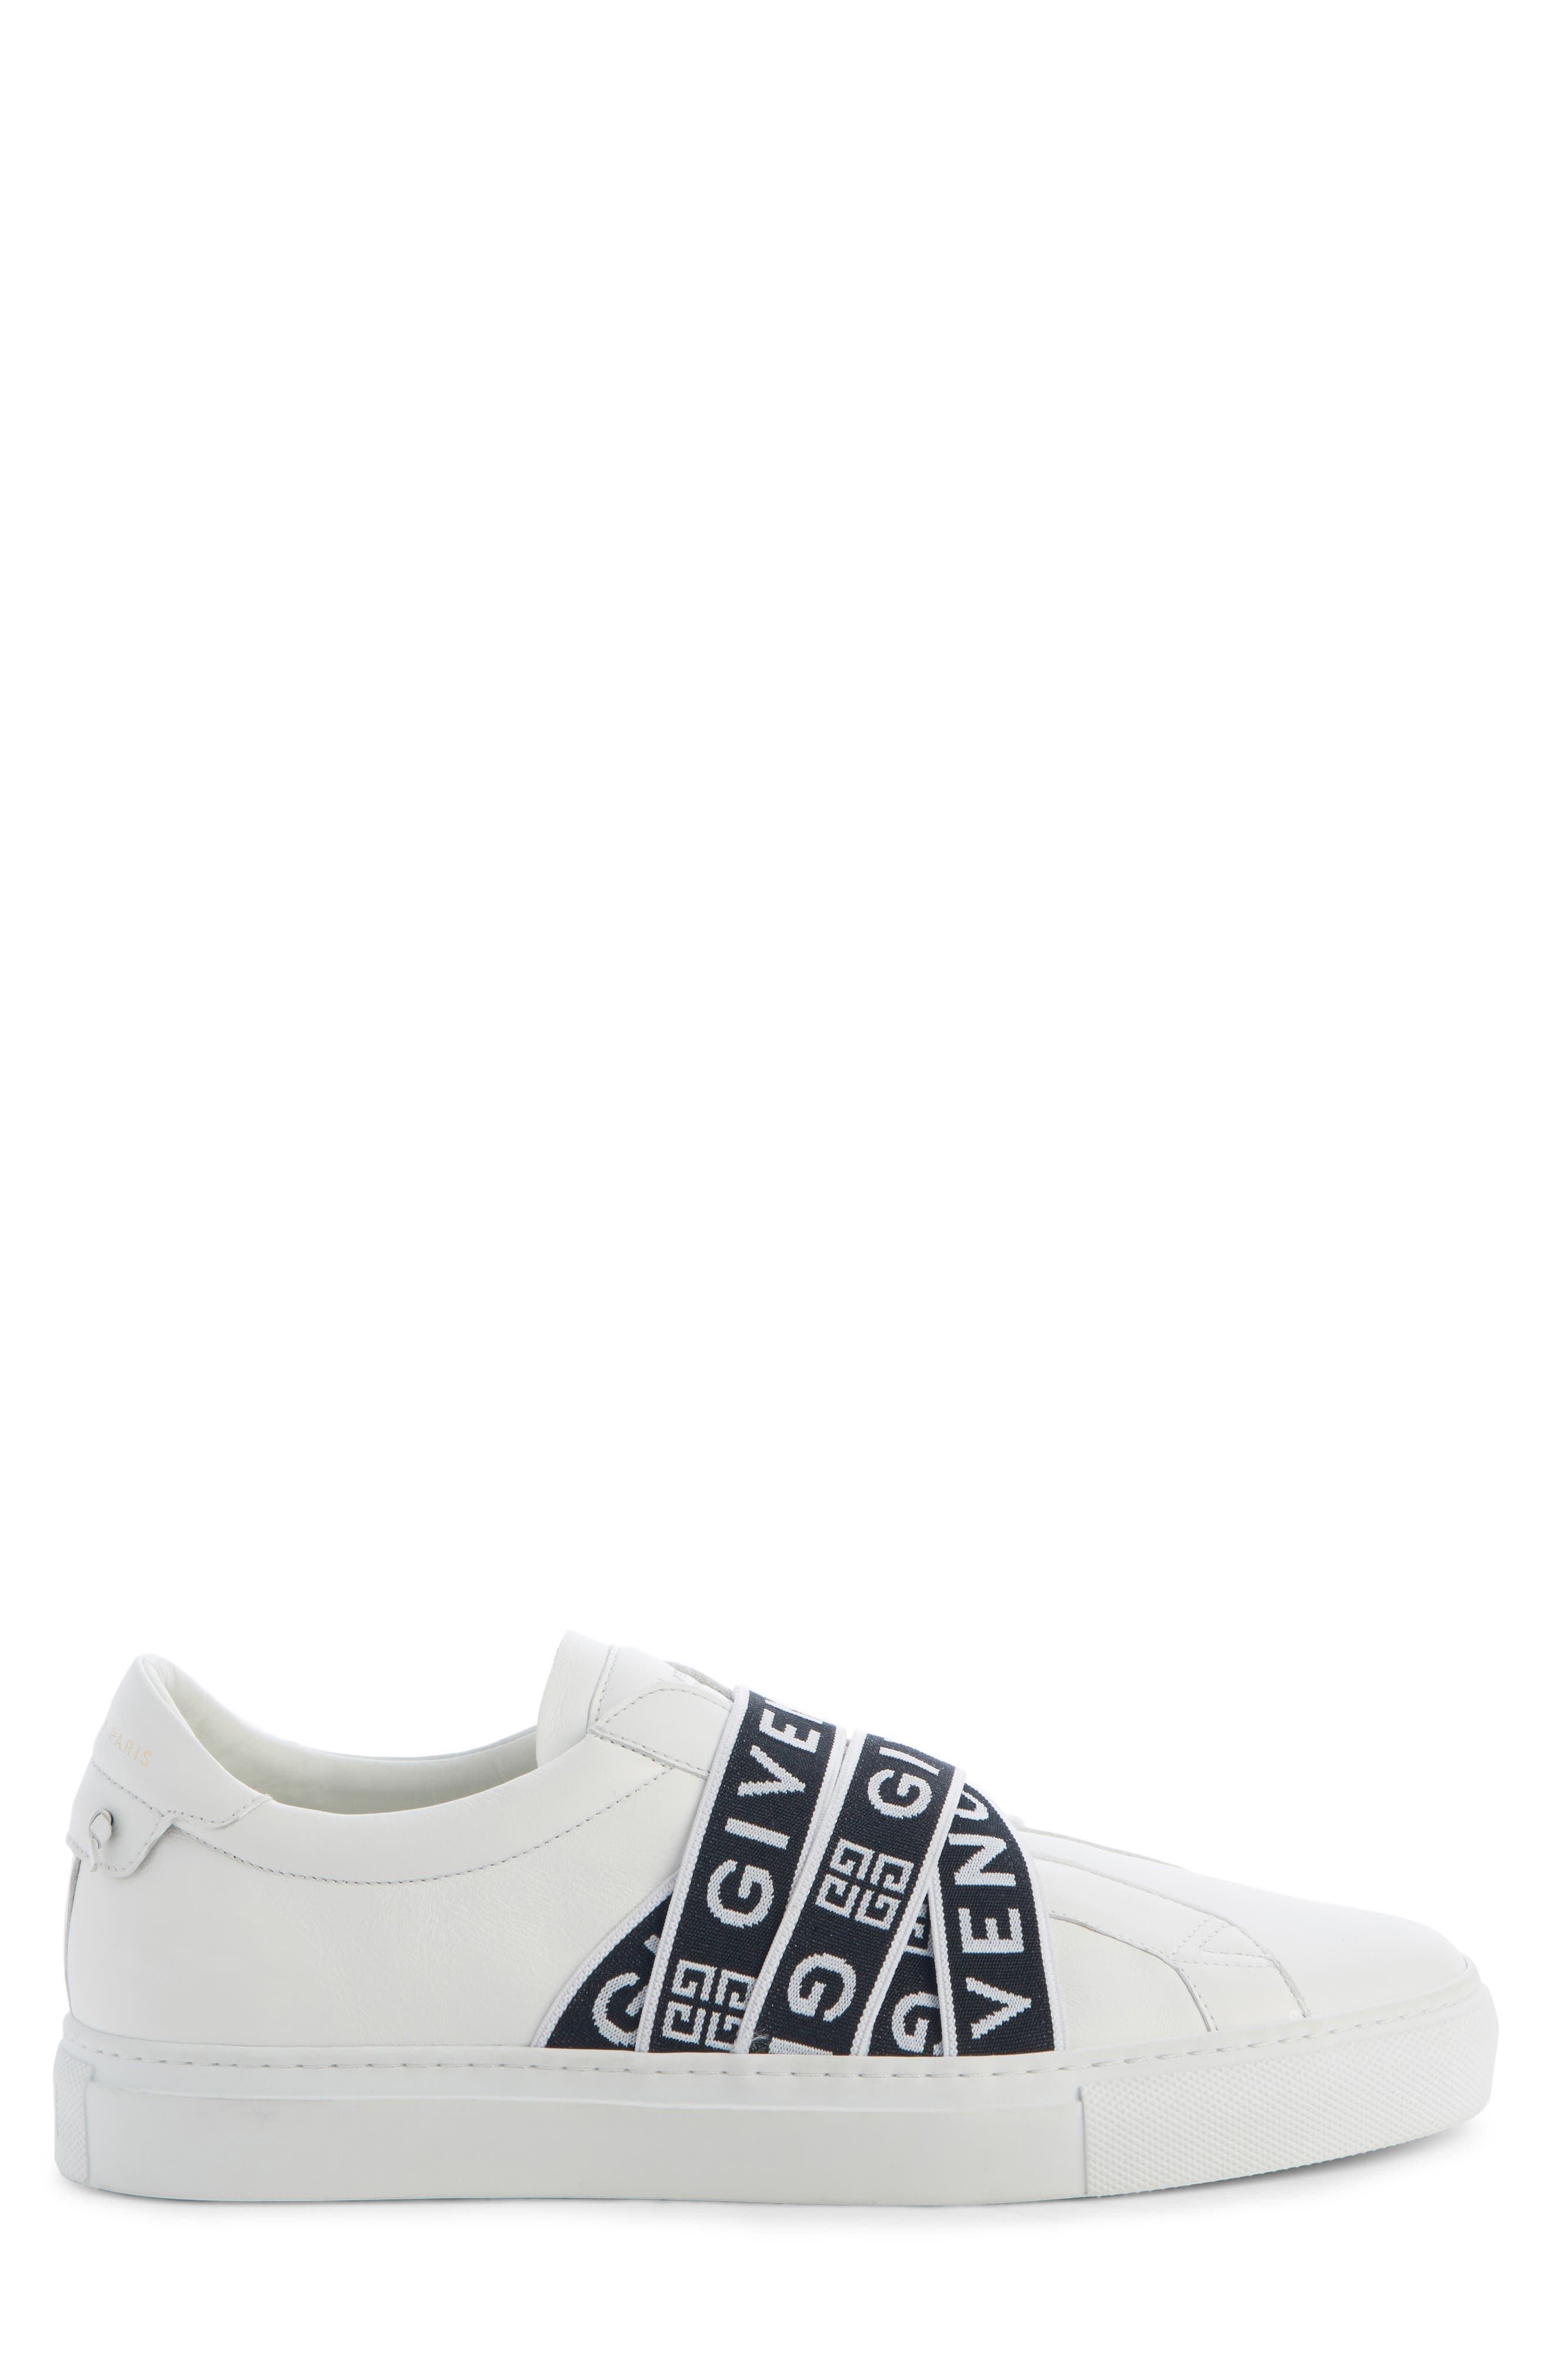 Urban Street Slip-On,                             Alternate thumbnail 3, color,                             WHITE/ BLACK